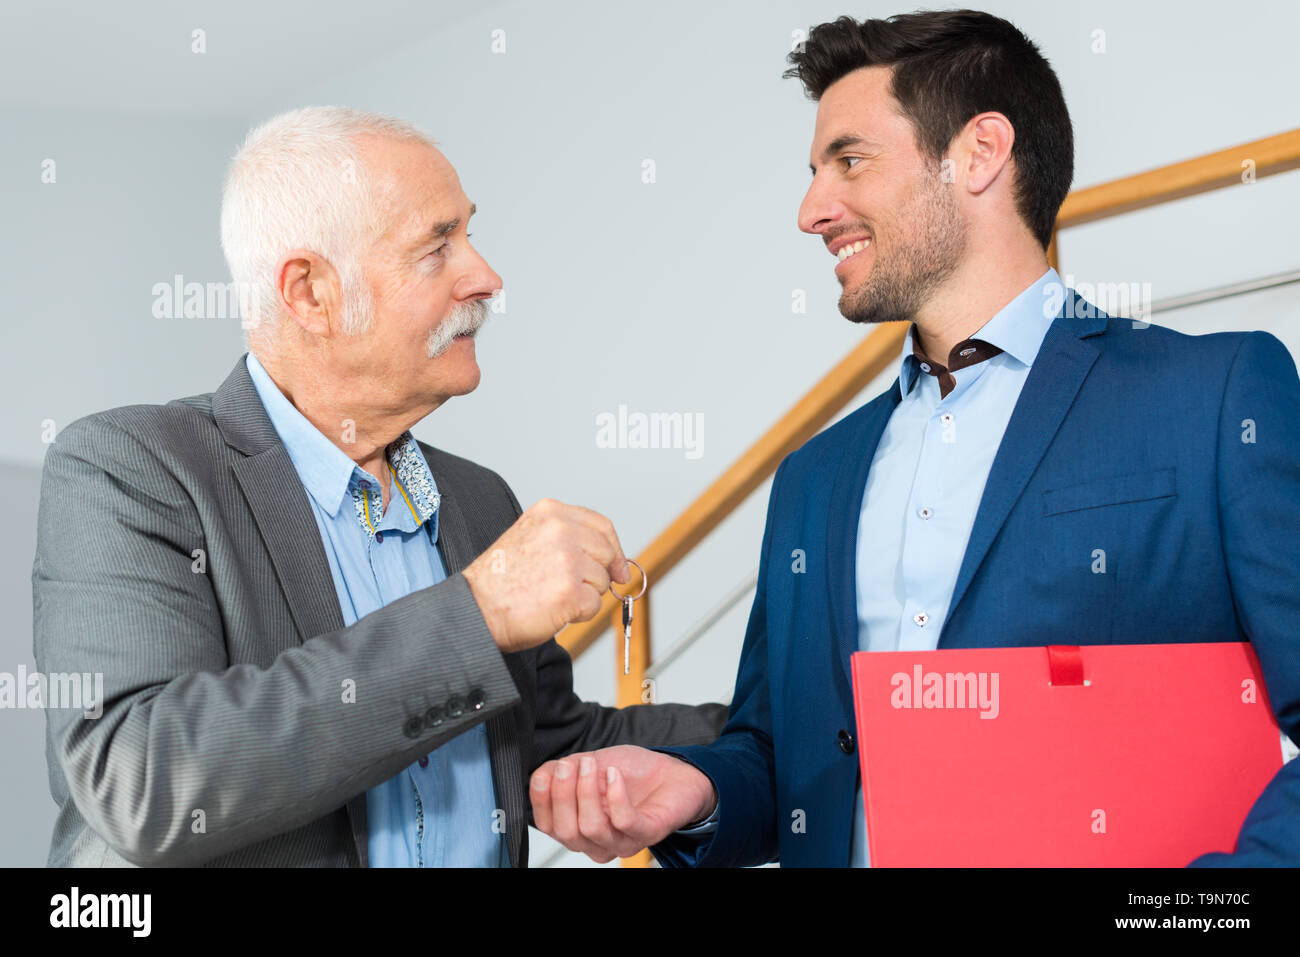 senior businessman passing keys to younger man - Stock Image